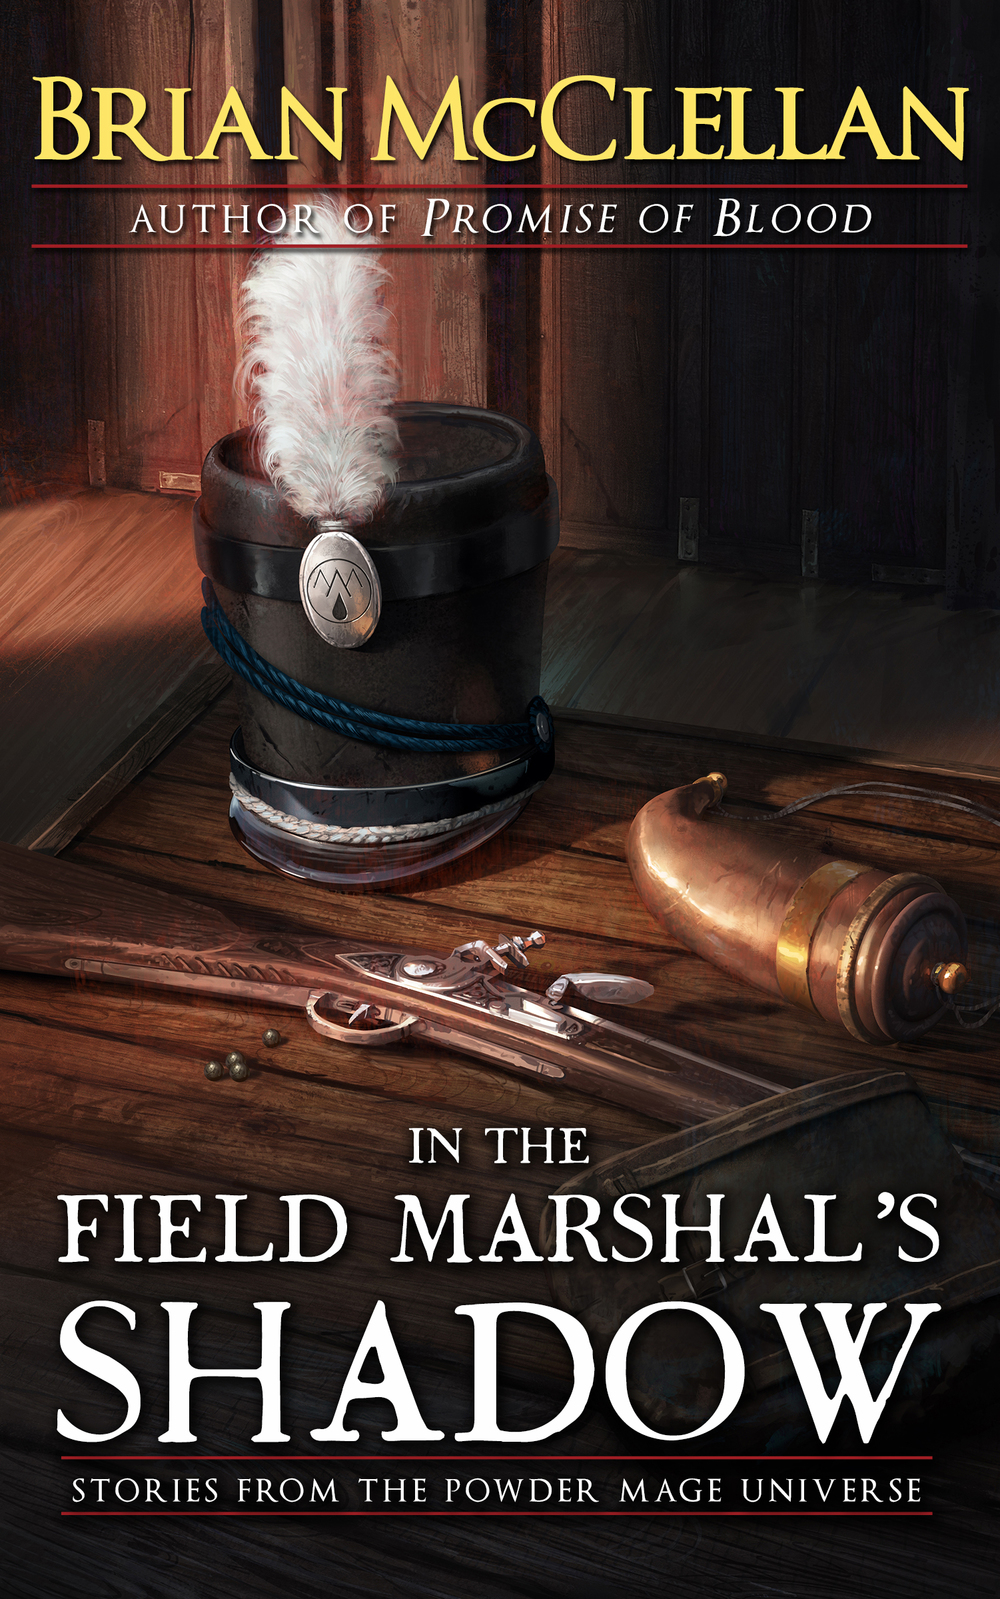 Commissioning powder mage cover art in the field marshals shadow fandeluxe Image collections